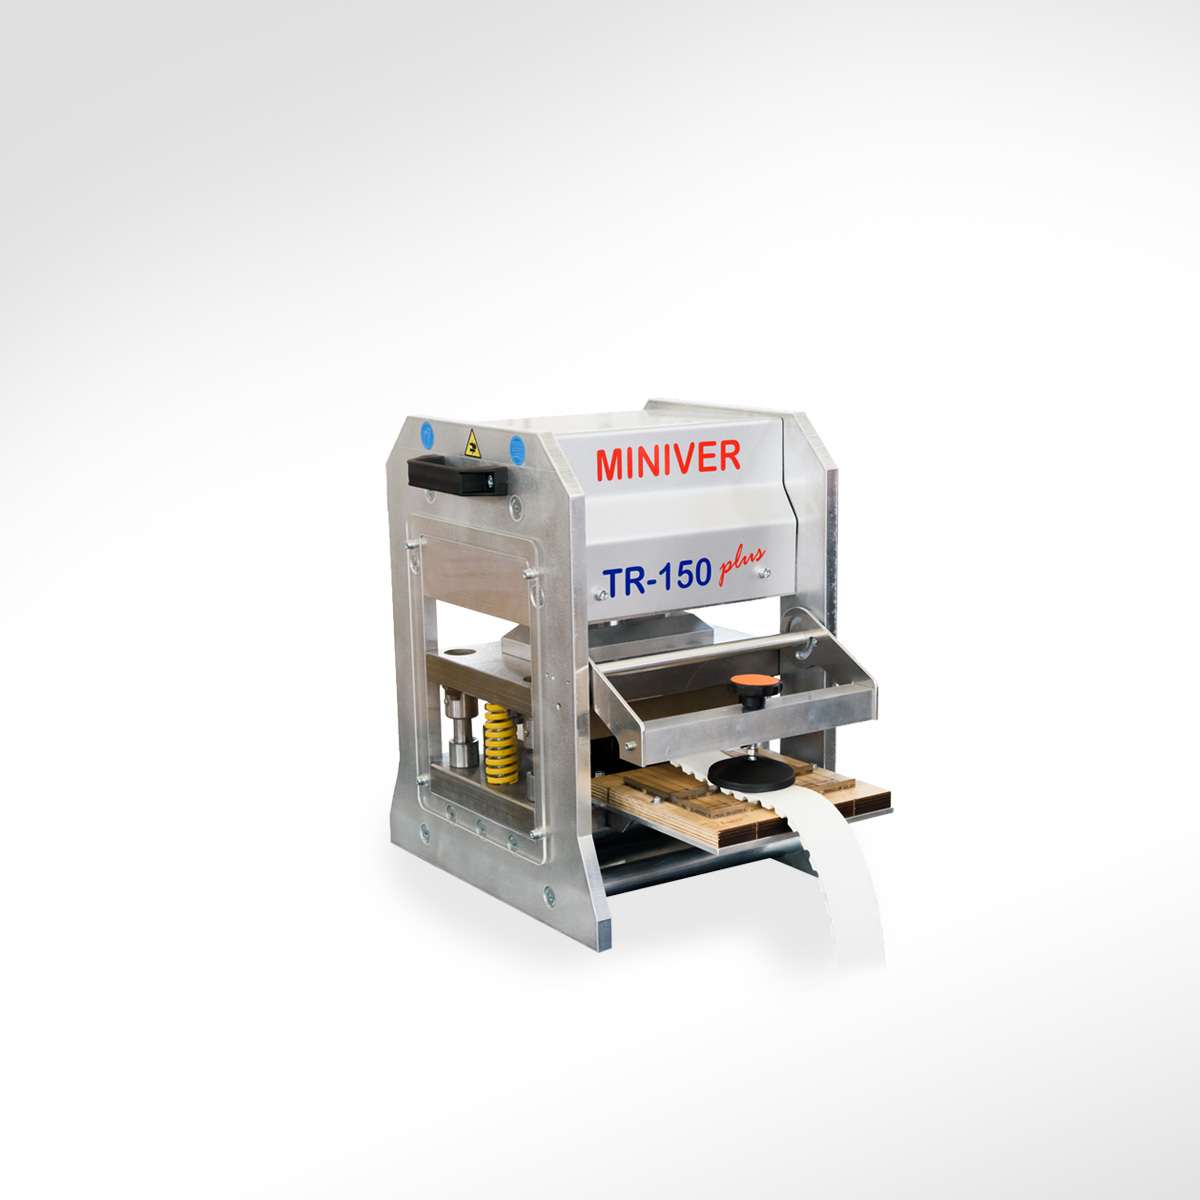 Miniver TR Plus Punching Machine - Presses for Transmission Belts - Transmission Belts Preparation